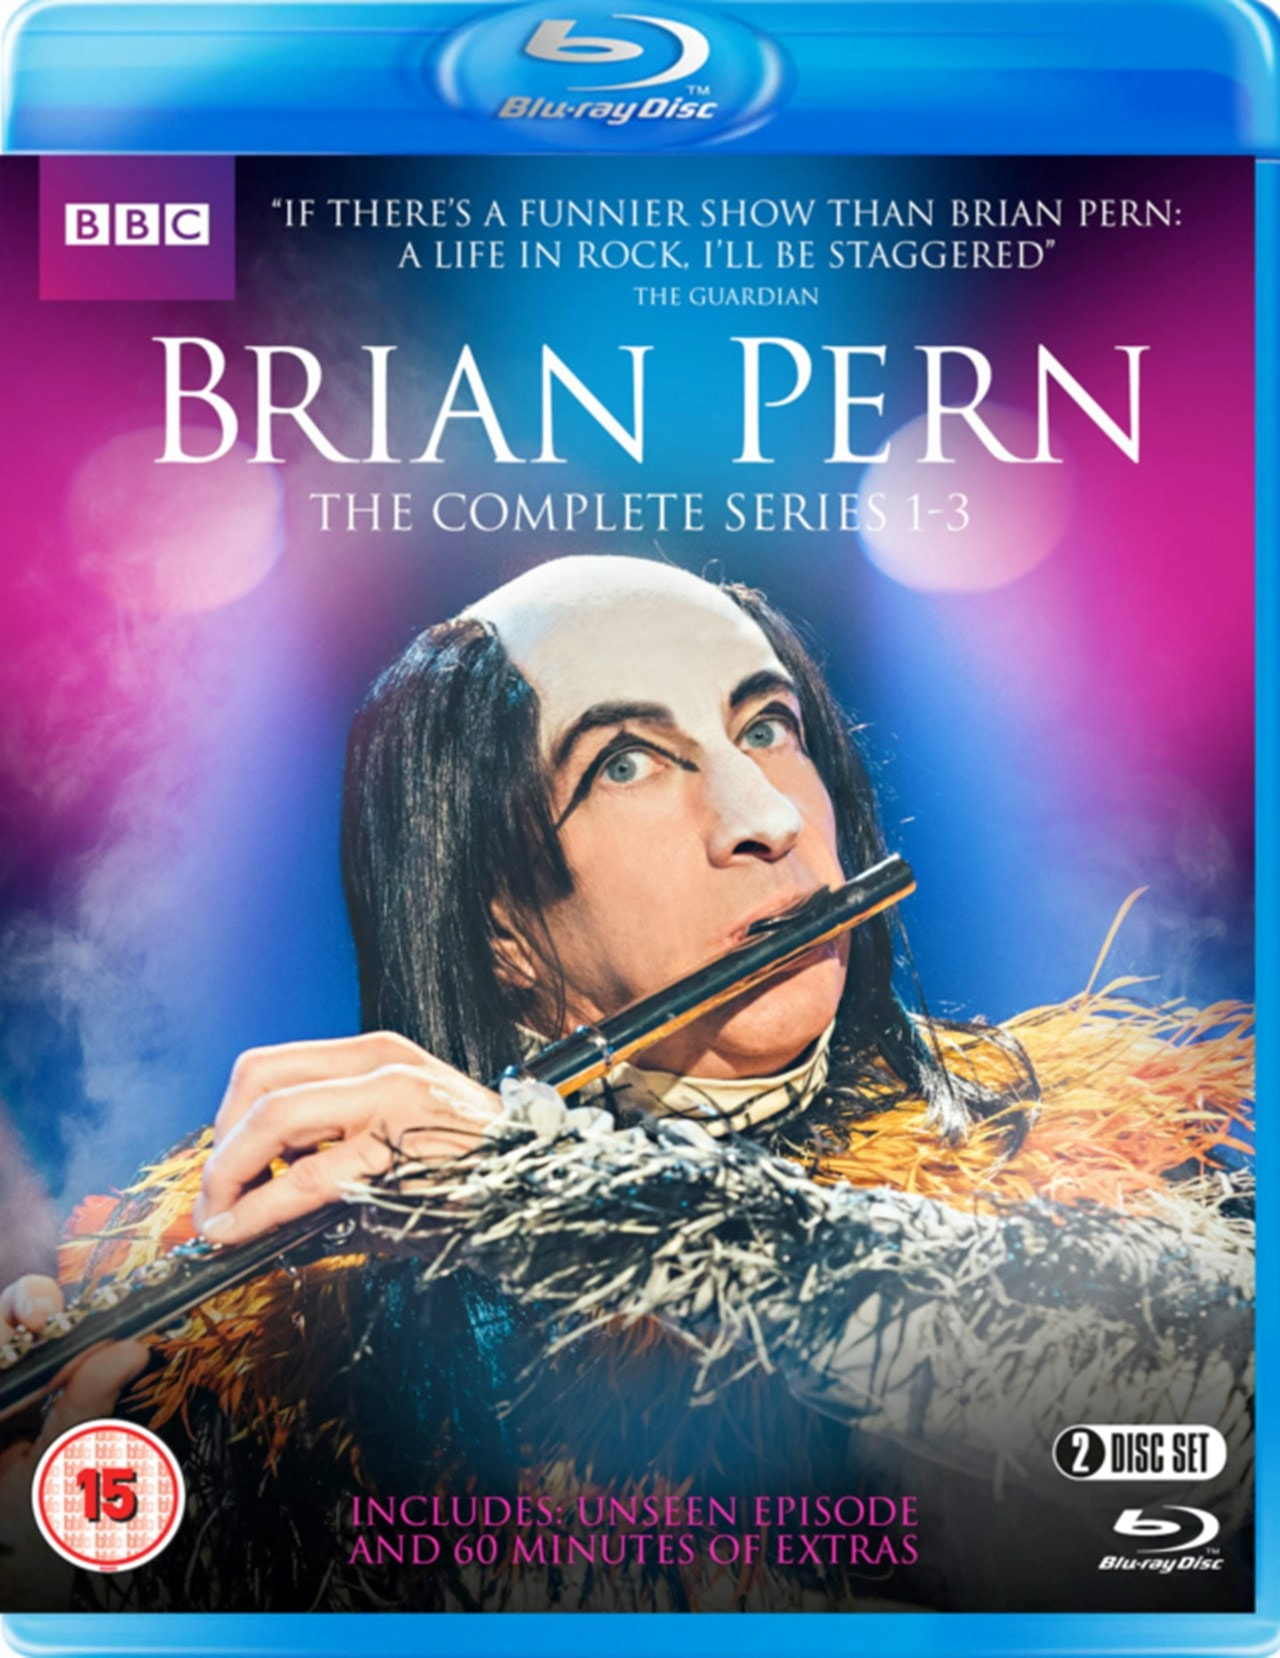 Brian Pern: The Complete Series 1-3 - 1